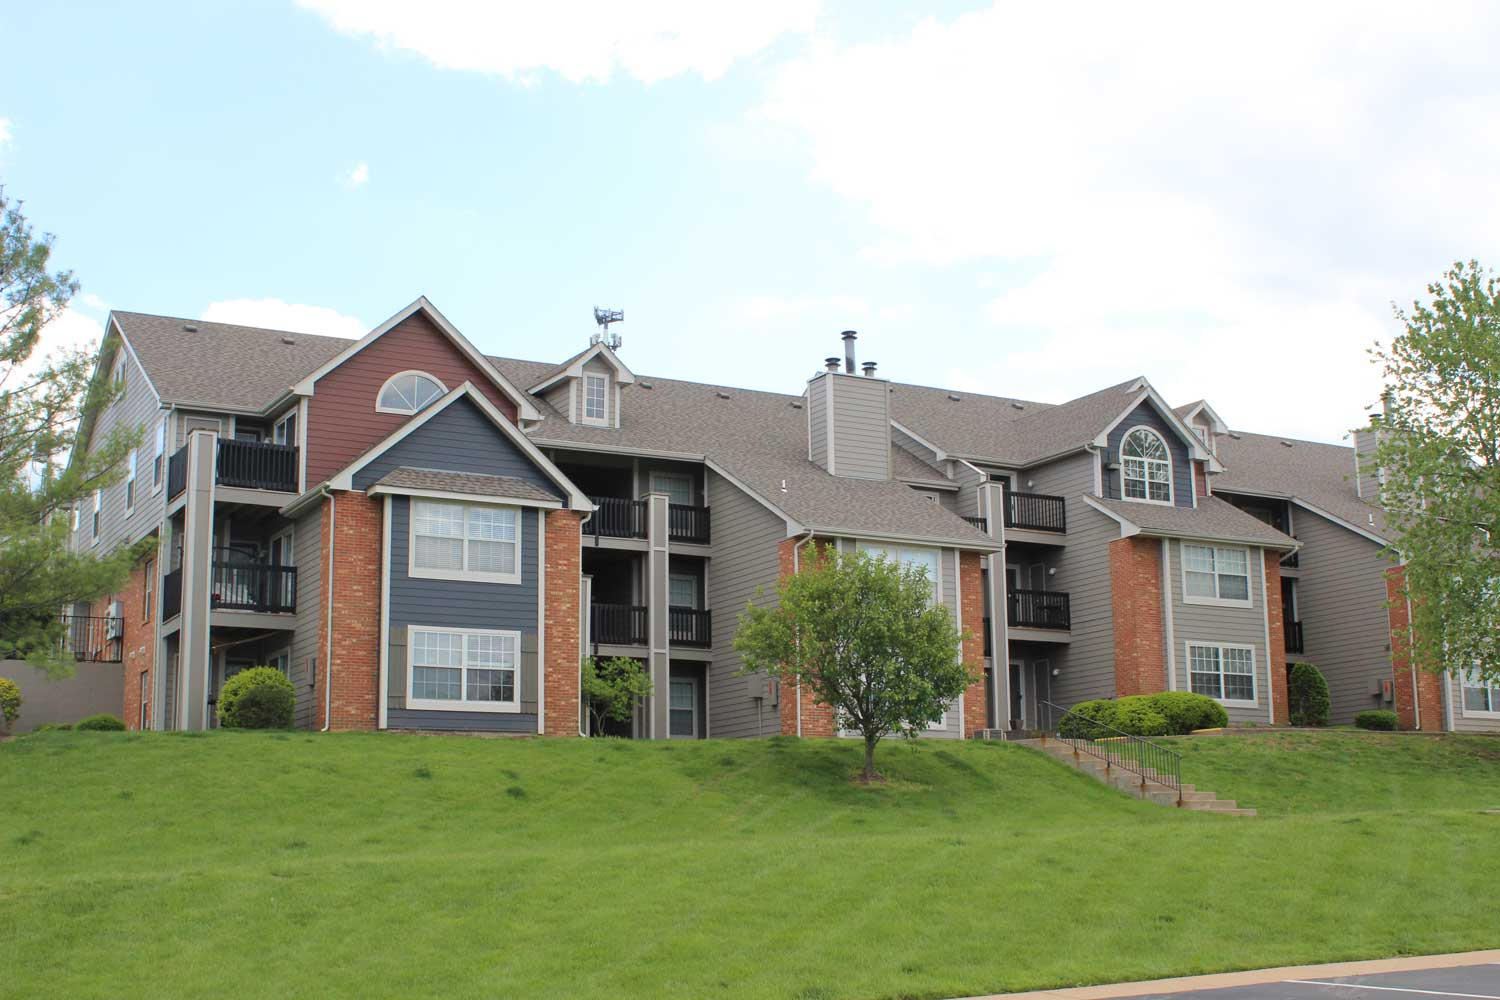 Apartments for Rent at Polo Downs Apartments in Fenton, MO